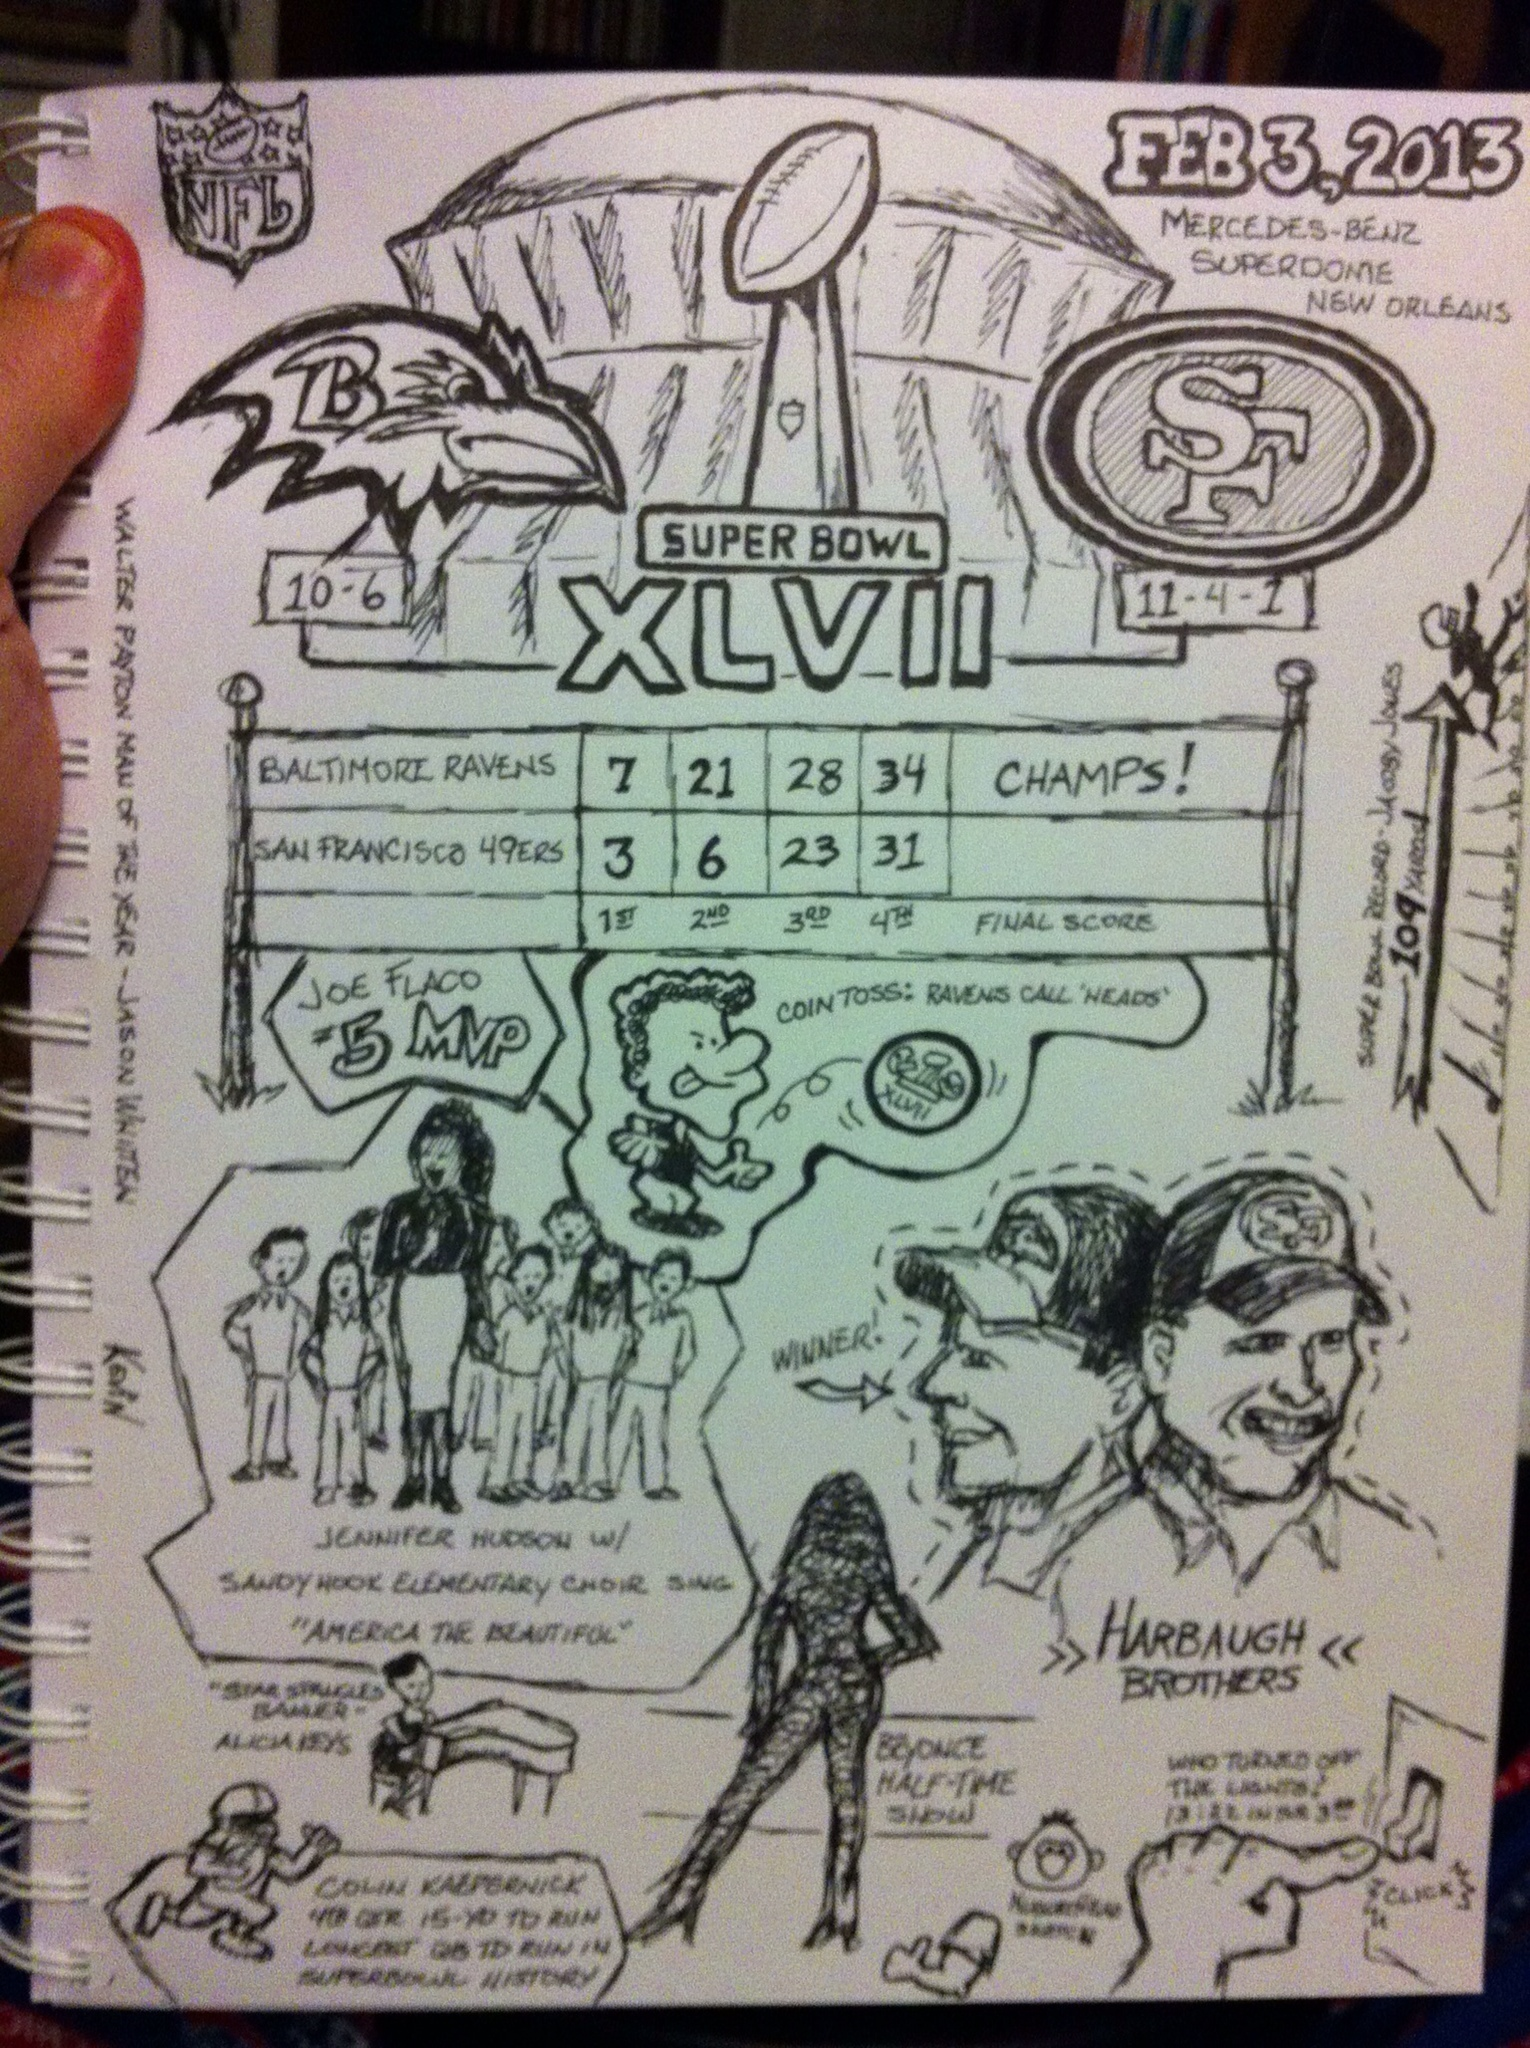 Live Sketchnotes of Super Bowl 47